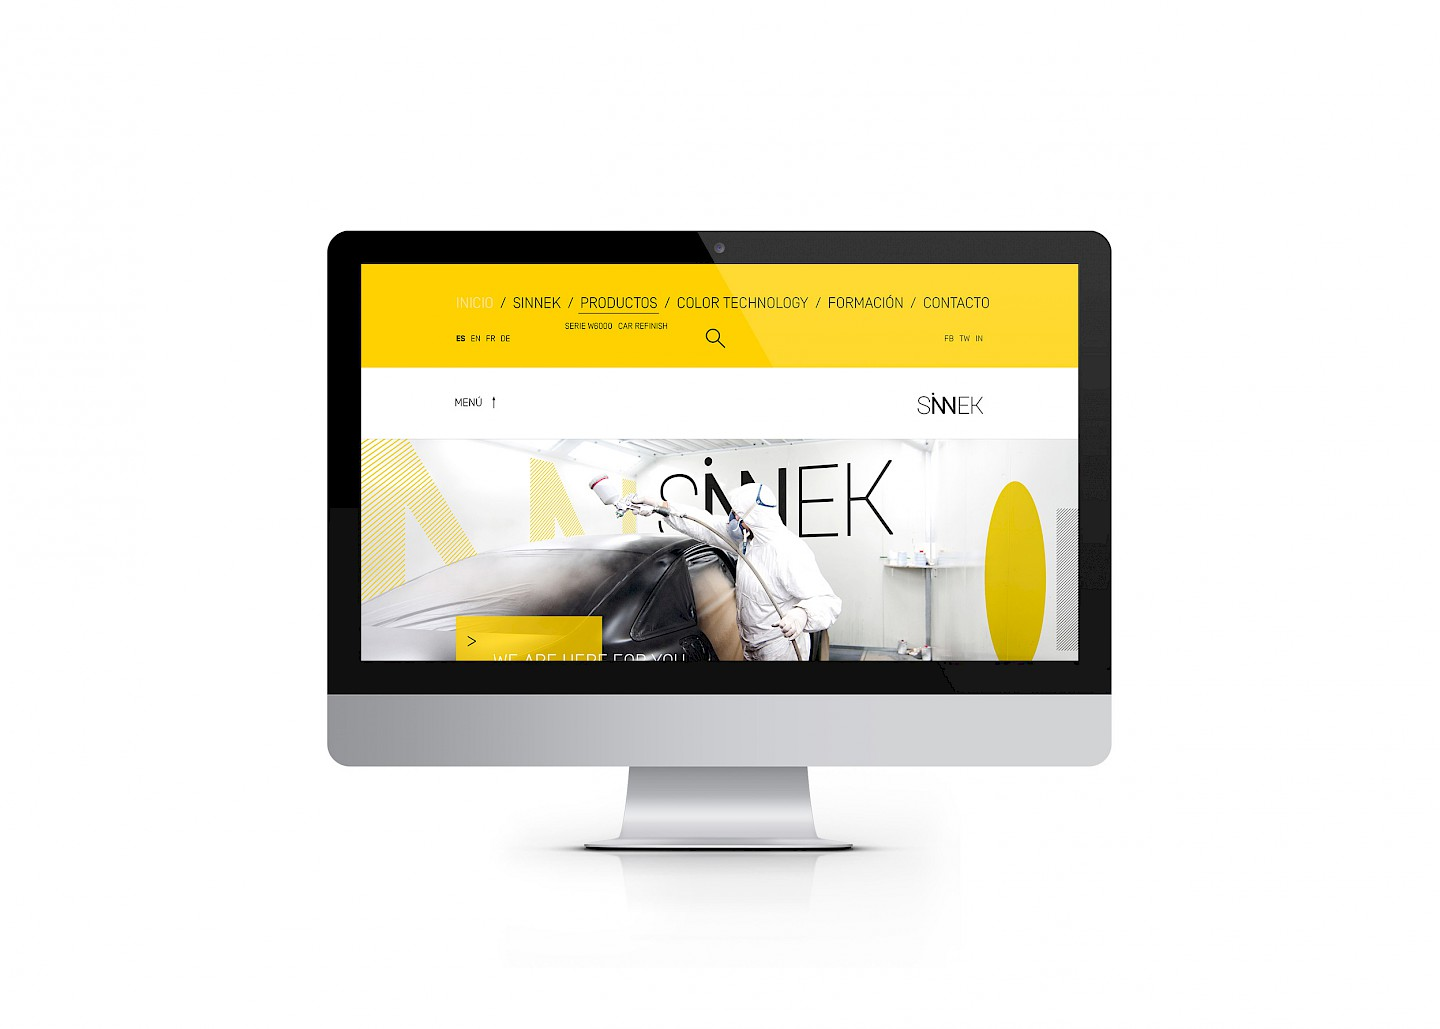 move sinnek branding web